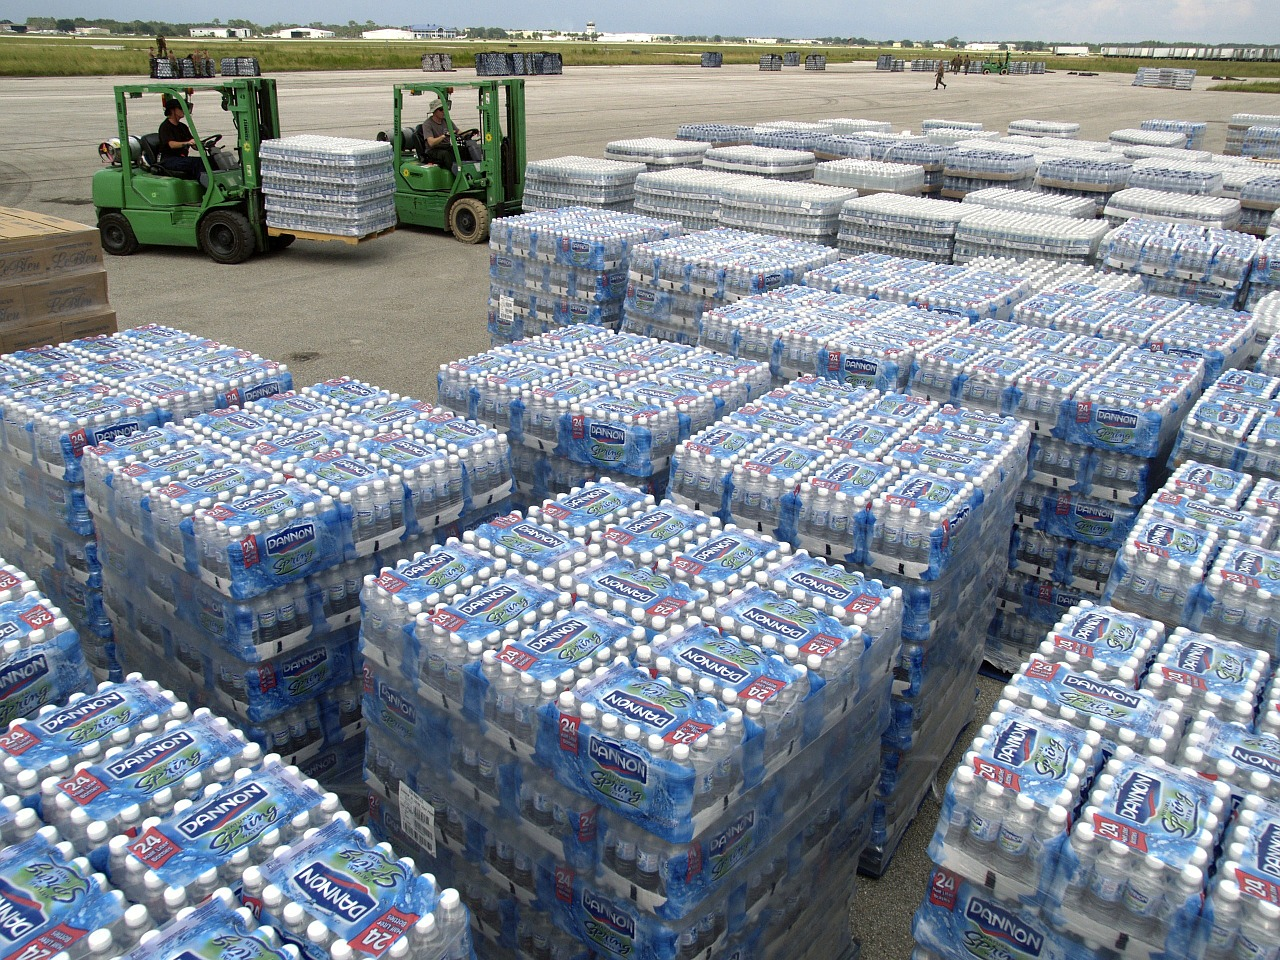 Bottled water pallets discovered untouched post-Hurricane Maria